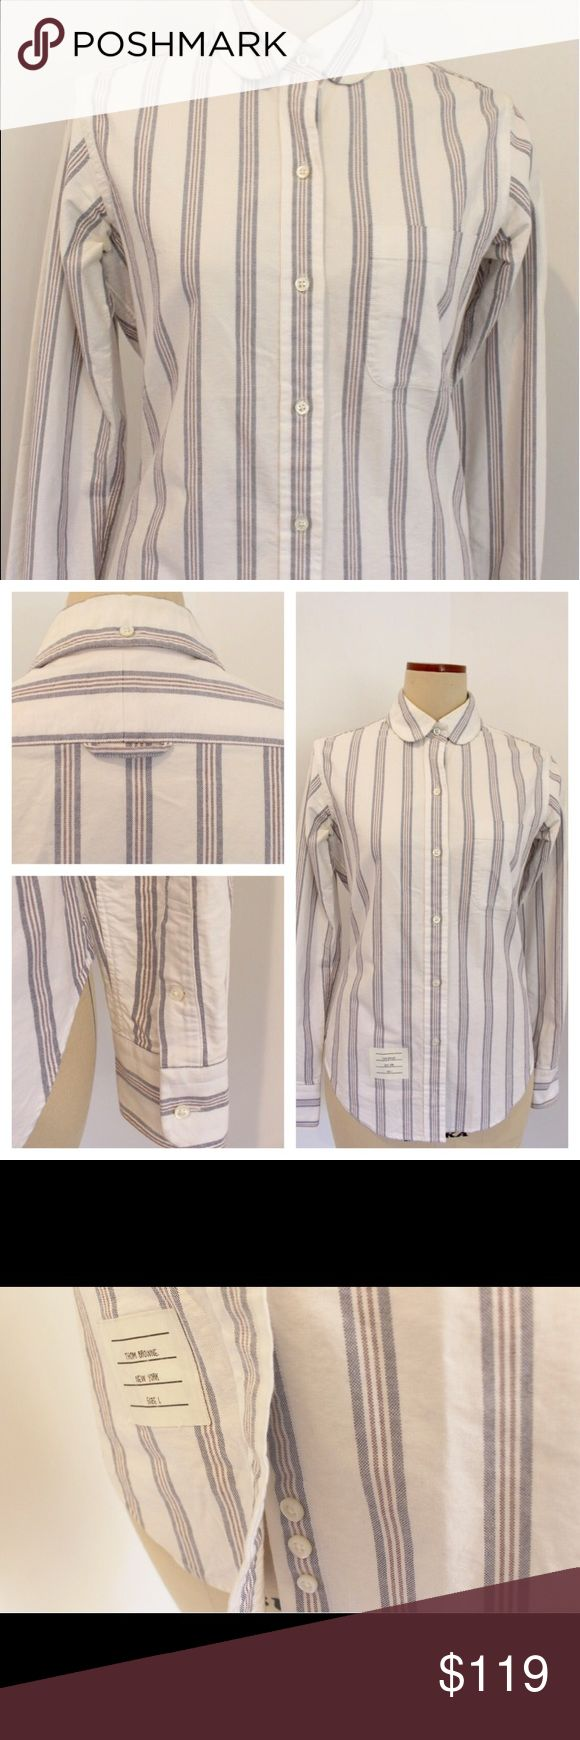 Thom Browne Women's Oxford Shirt Size 1 Thom Browne Women's Oxford shirt Size 1 (women's size between XS and S) worn only once in excellent condition. Just dry cleaned! Thom Browne Tops Button Down Shirts